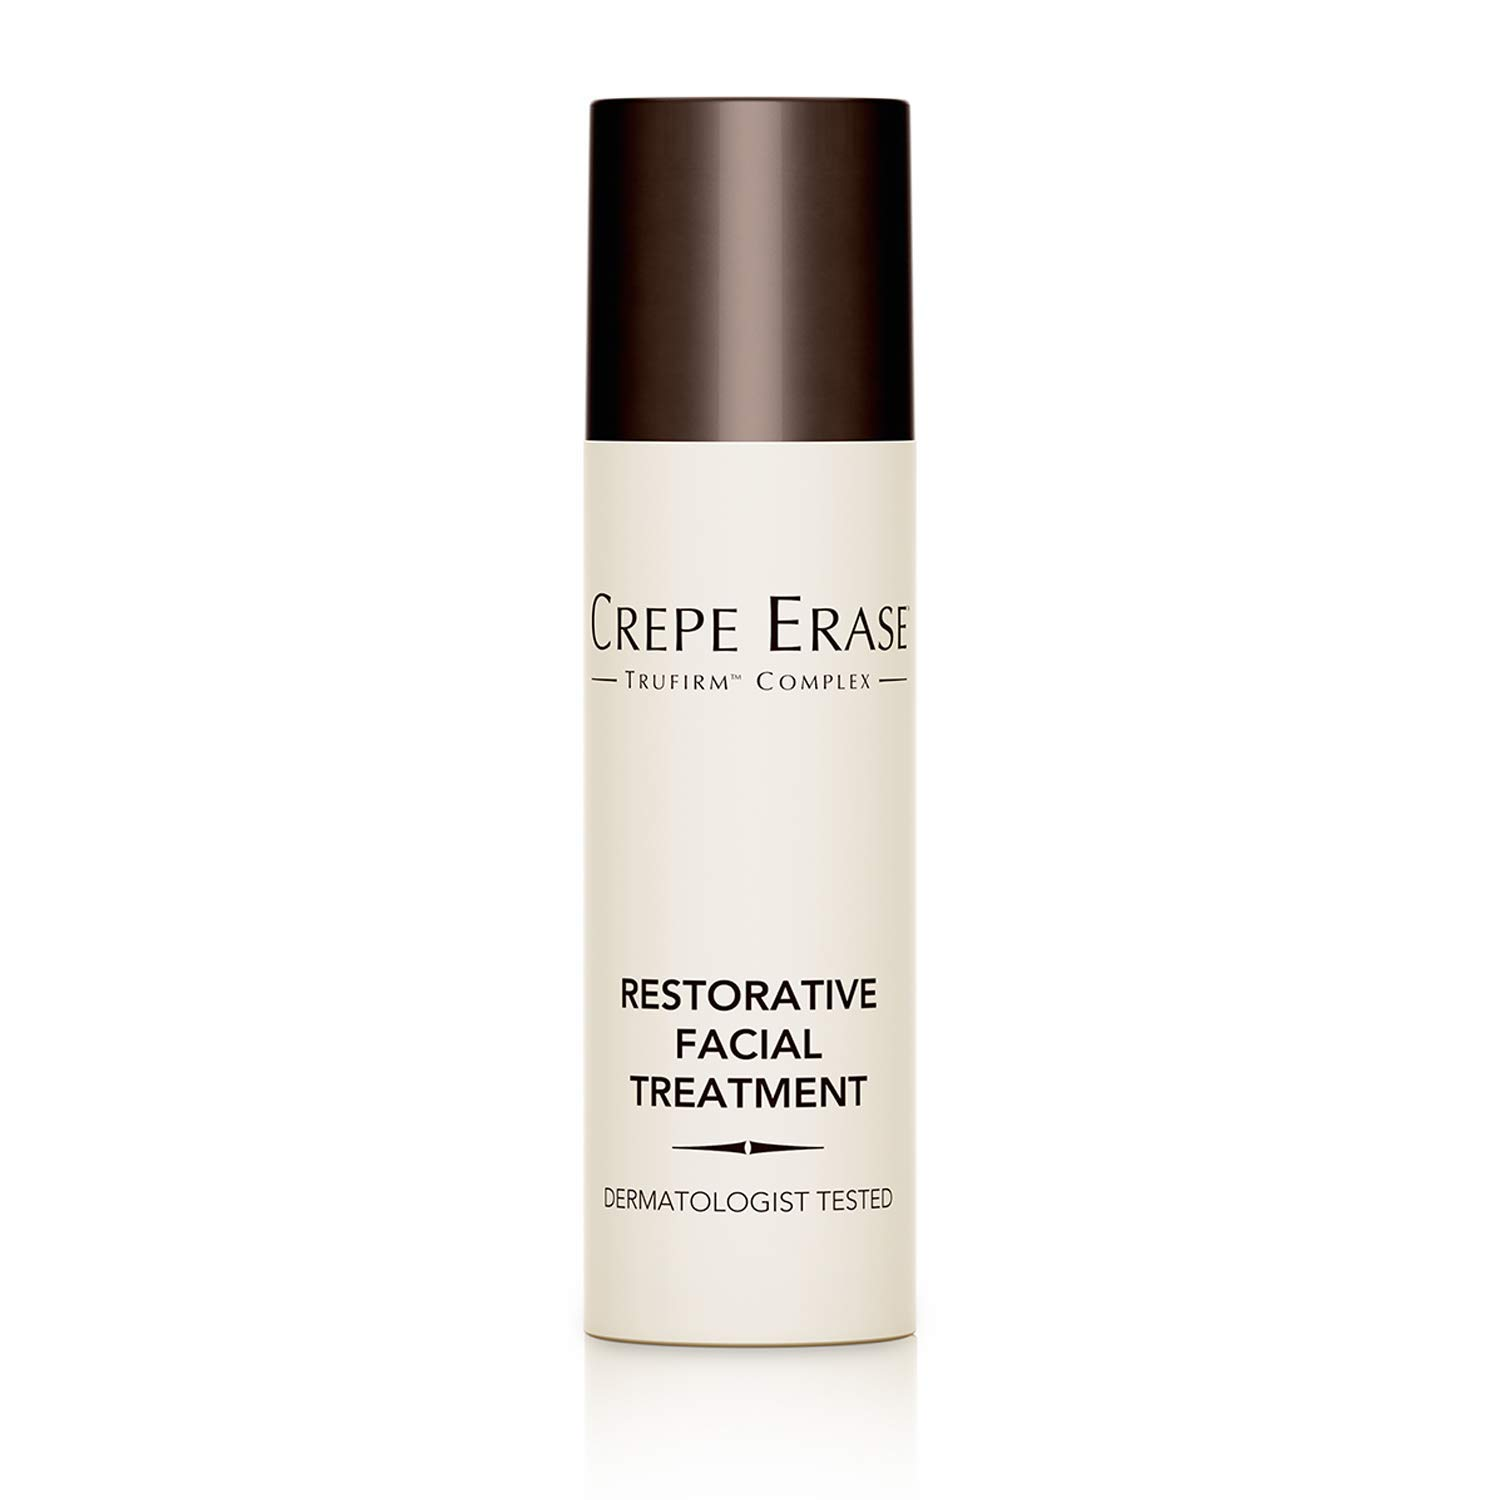 Crepe Erase - Restorative Facial Treatment - TruFirm Complex - 0.5 Ounces